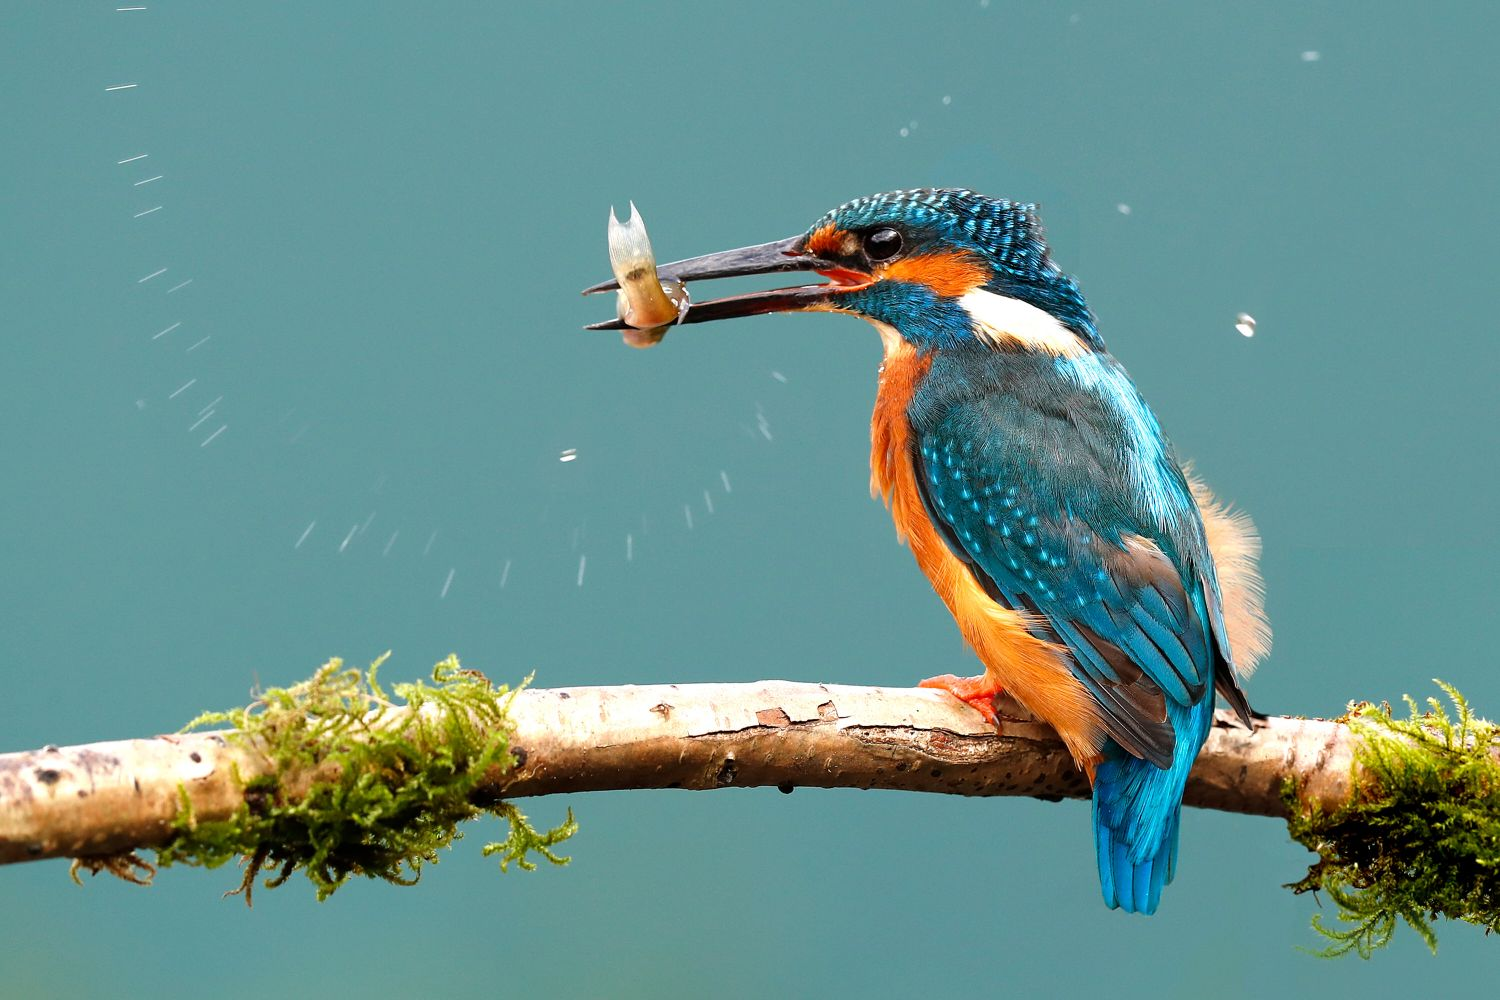 Kingfisher Feeding with a fish in it's mouth